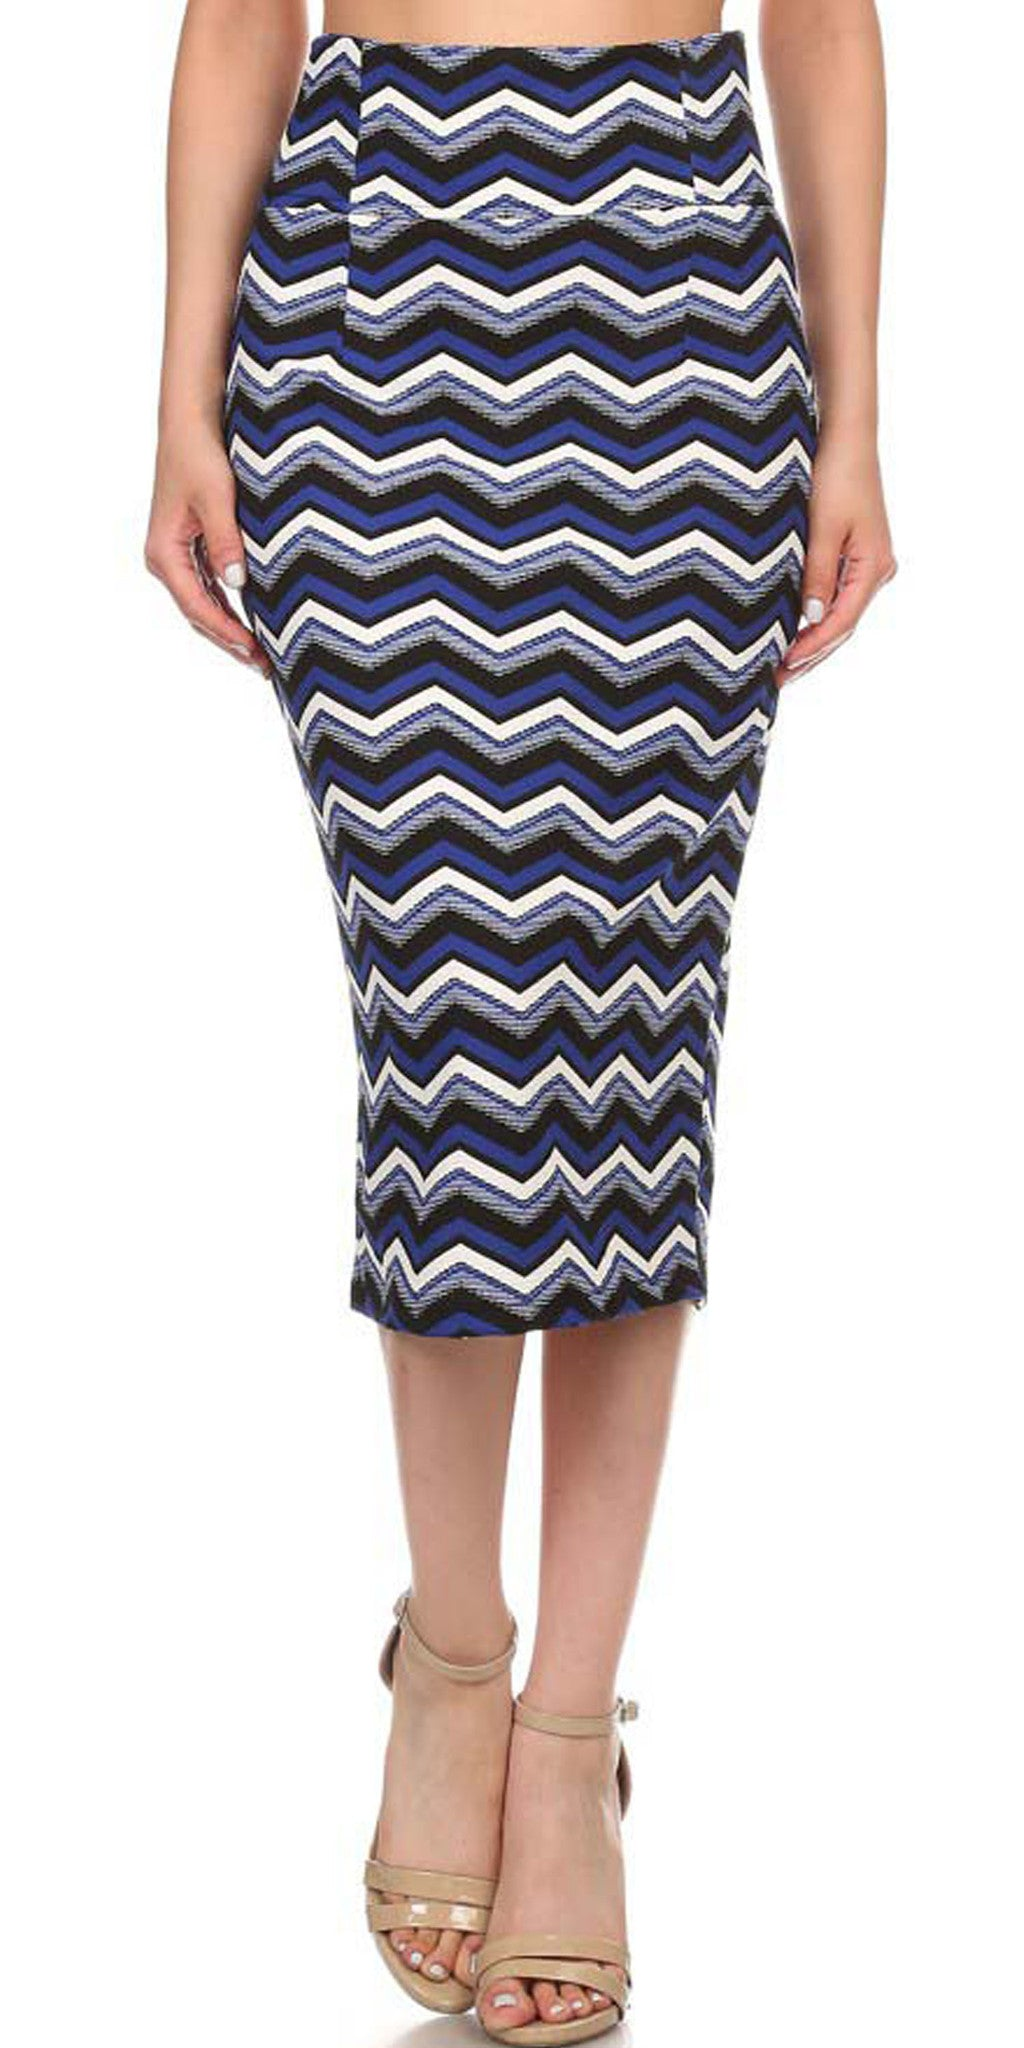 Avital Chevron Stretch Midi Straight Pencil Skirt (Royal Blue White Black),Skirts,Avital - Discount Divas